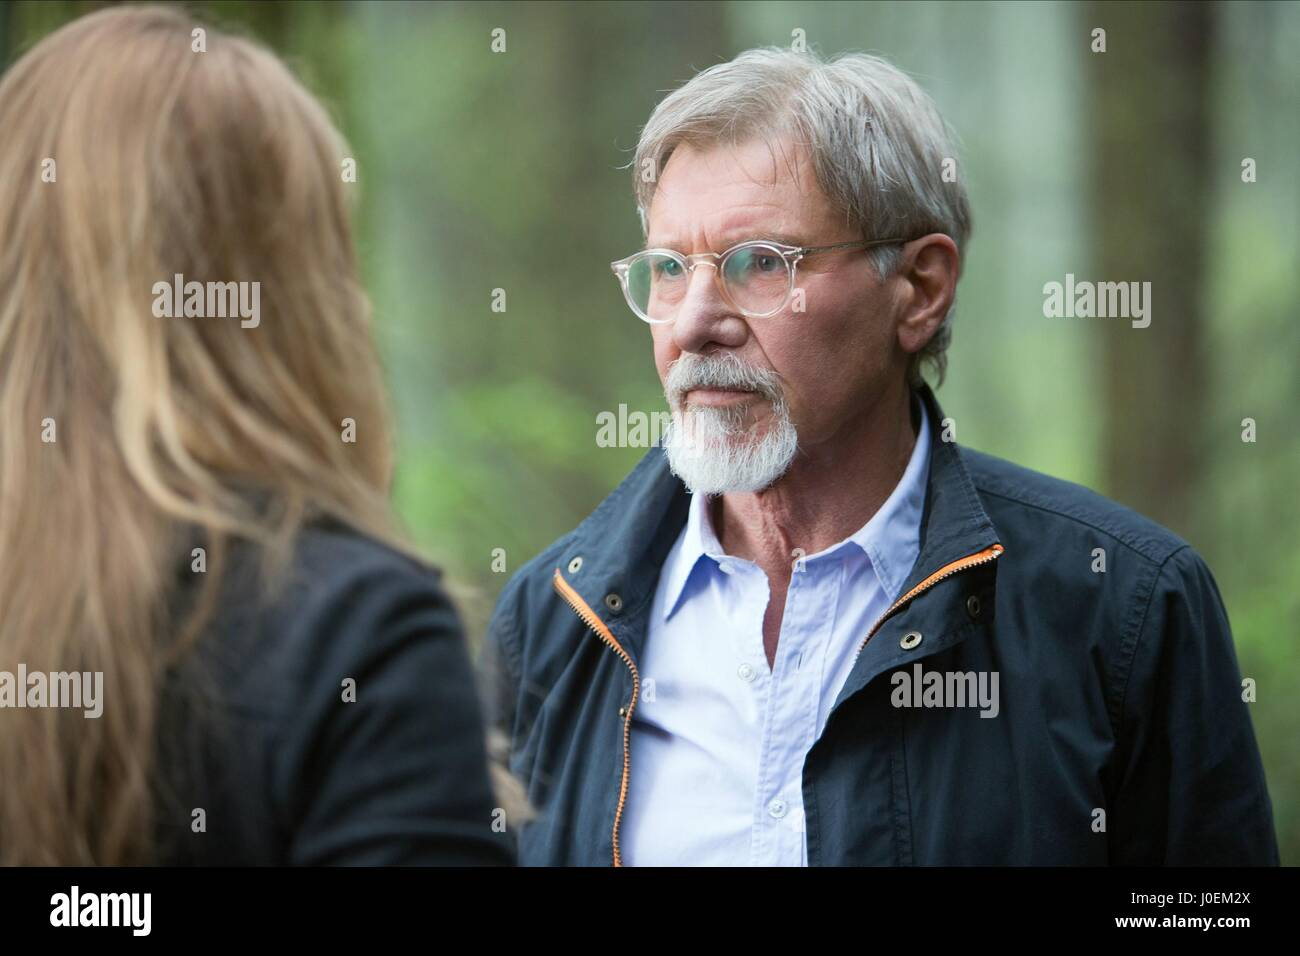 HARRISON FORD THE AGE OF ADALINE (2015 Stock Photo: 138006034 - Alamy